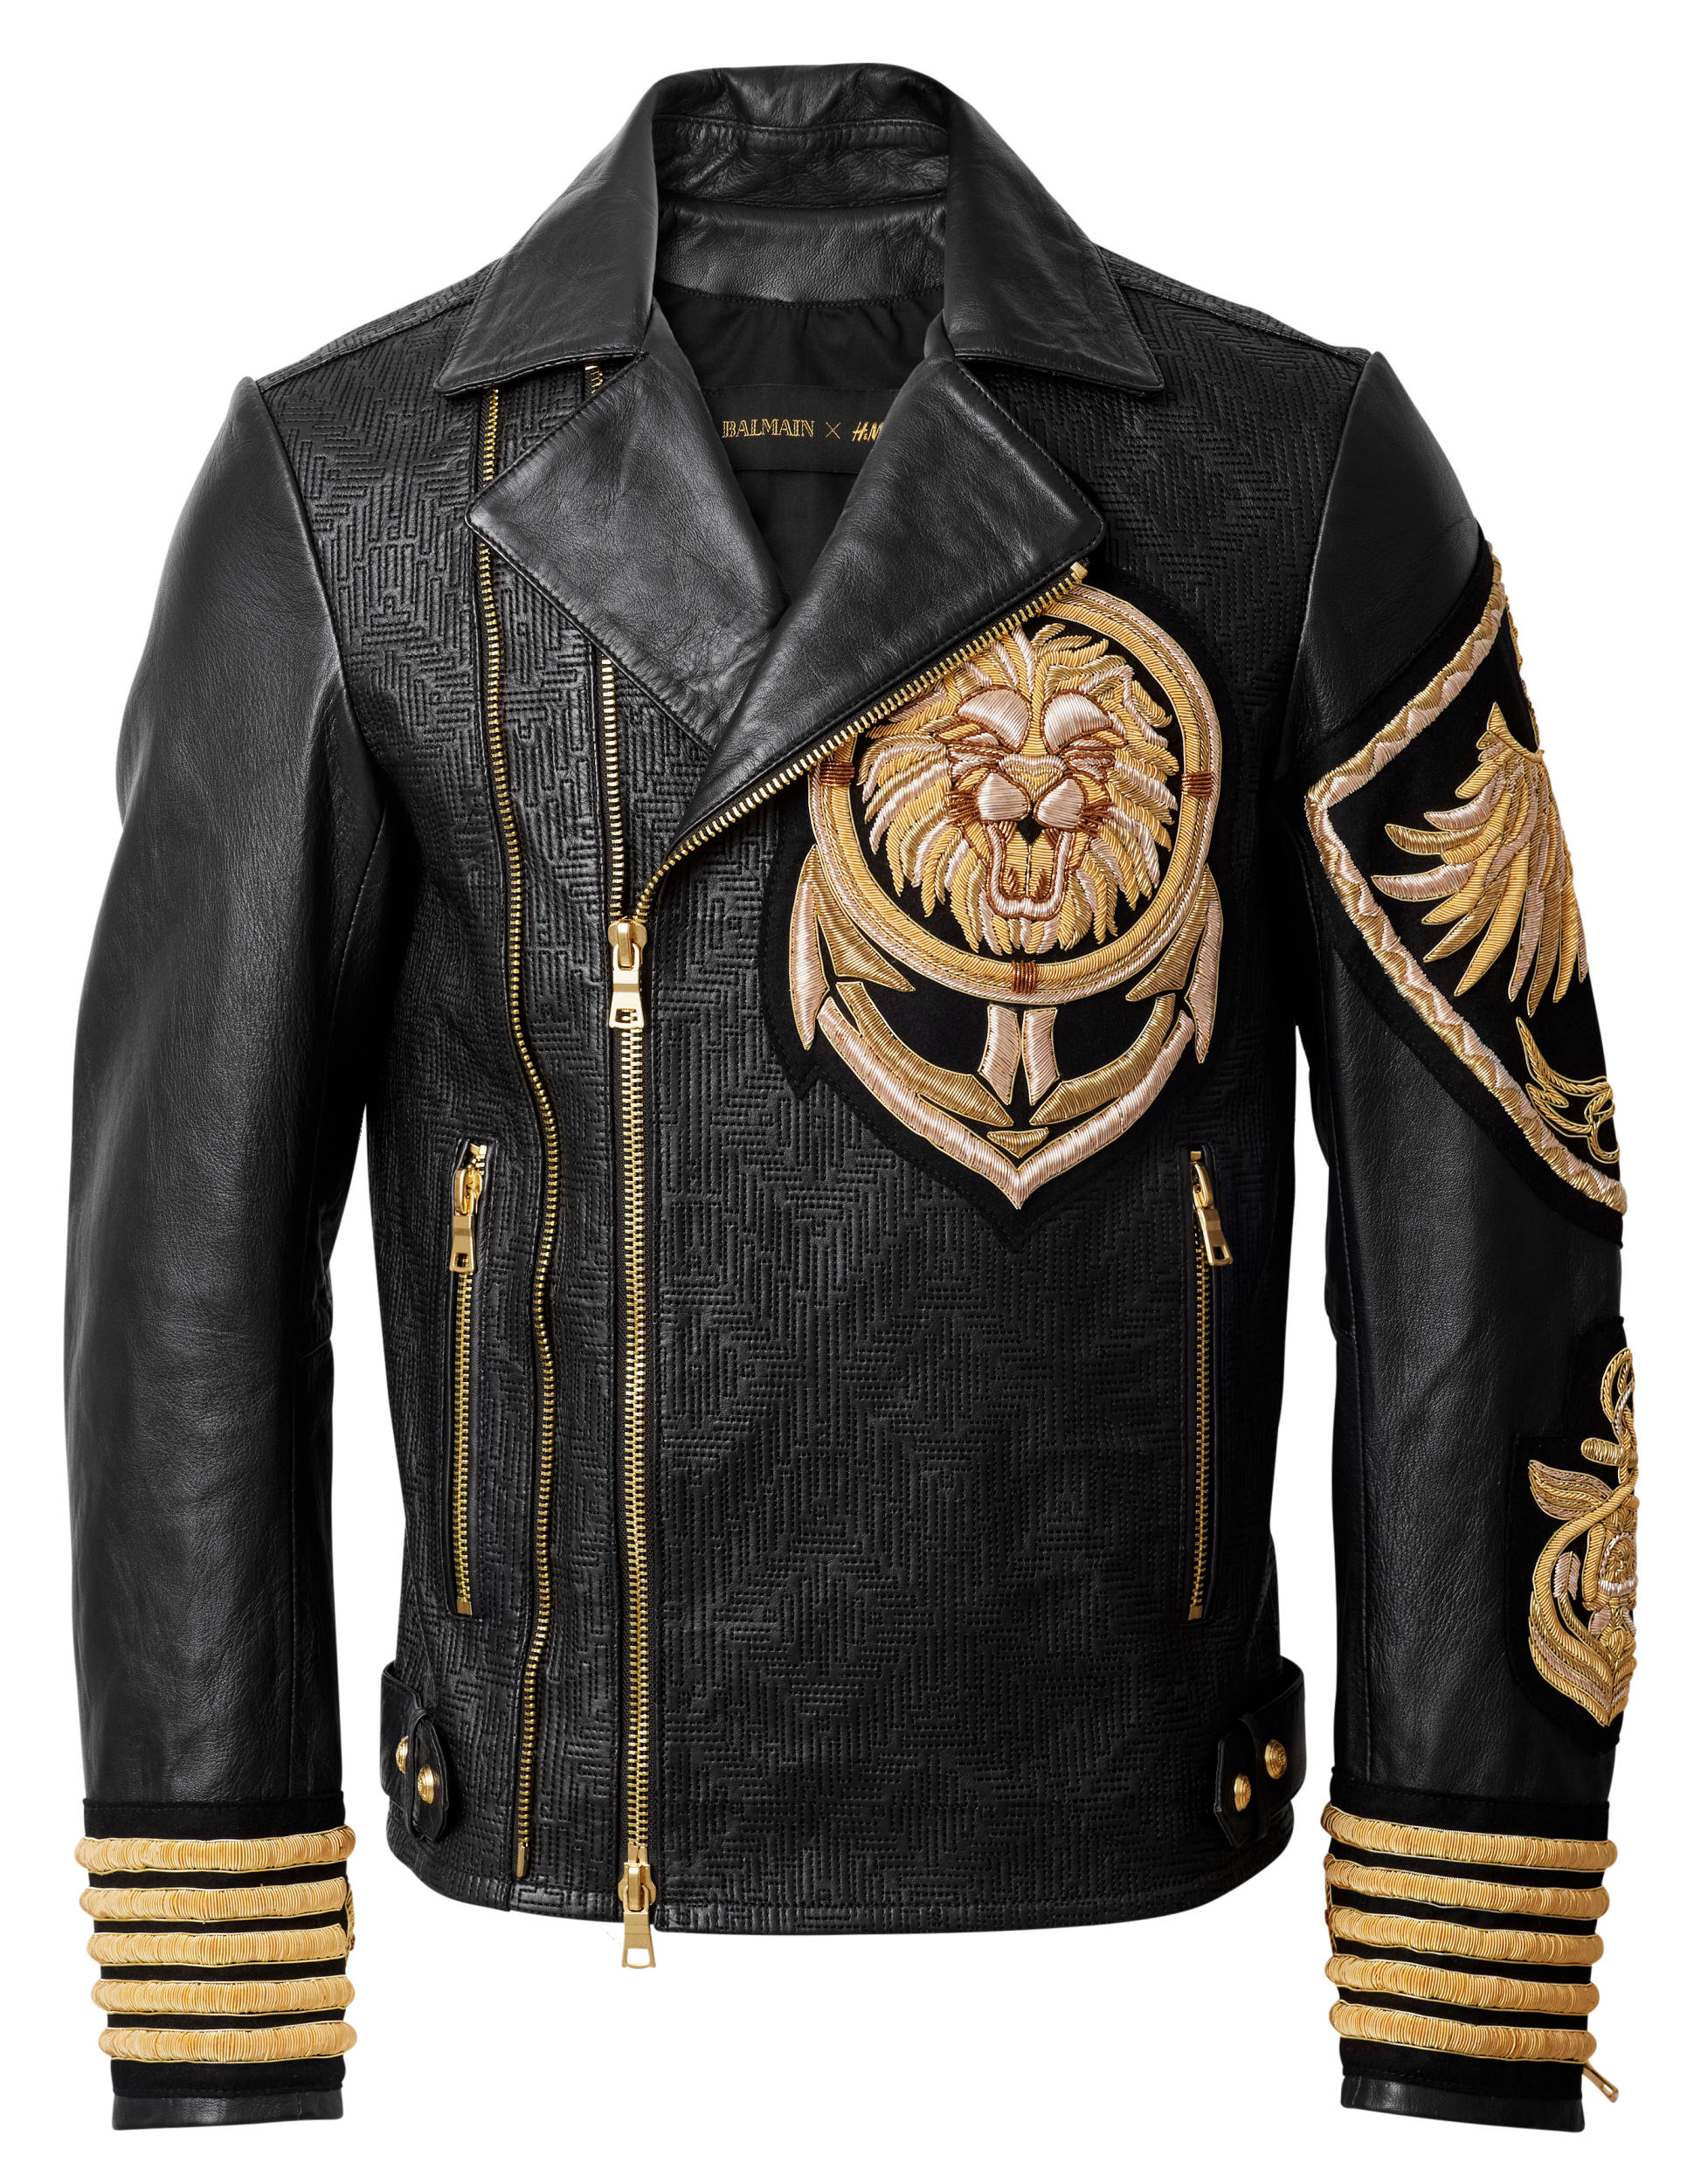 Men's Balmain Jackets First step to joining the #BalmainArmy - get a Balmain jacket. From baroque-inspired double-breasted blazers to suede biker jackets, the Parisian label's outerwear styles are designed with couture-like tailoring and exceptional attention to detail.